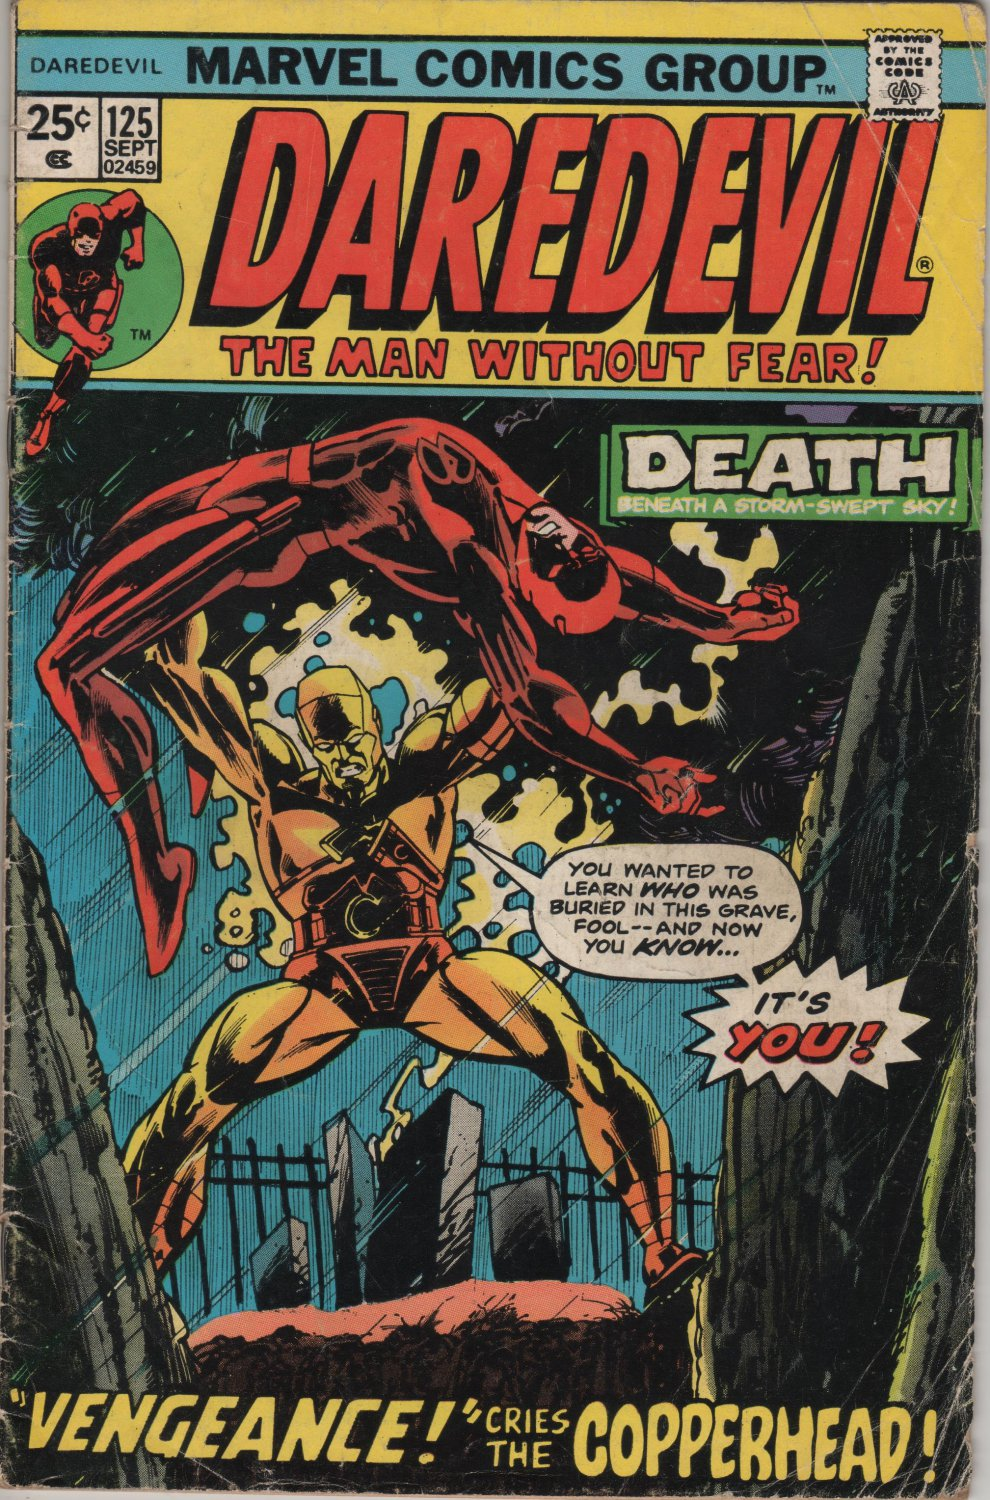 Daredevil #125 In The Clutches of The Copperhead c.1975